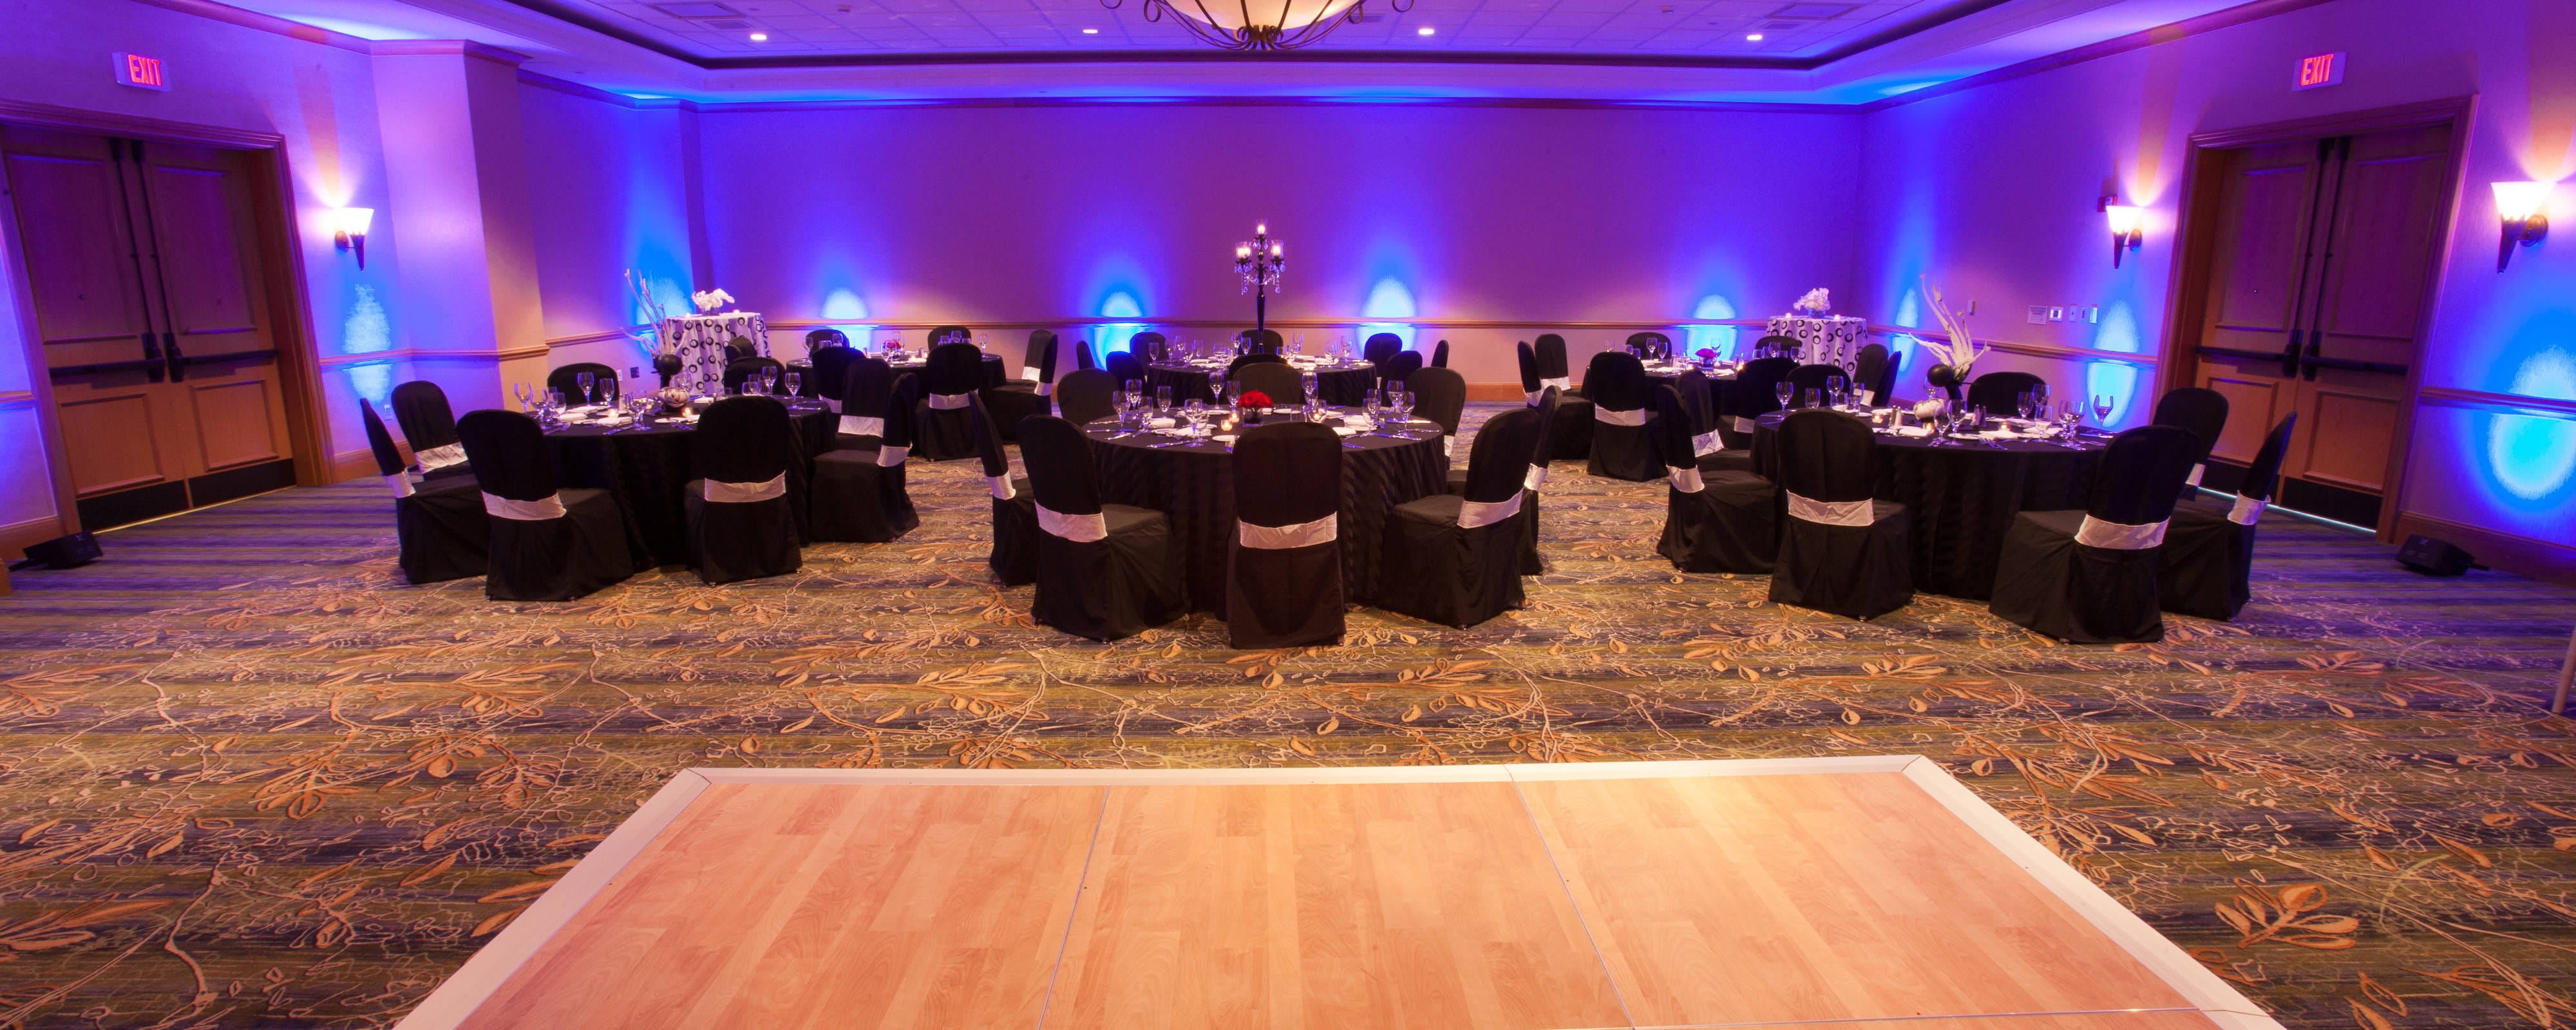 Wedding Venues in Orlando, FL | Orlando World Center Marriott